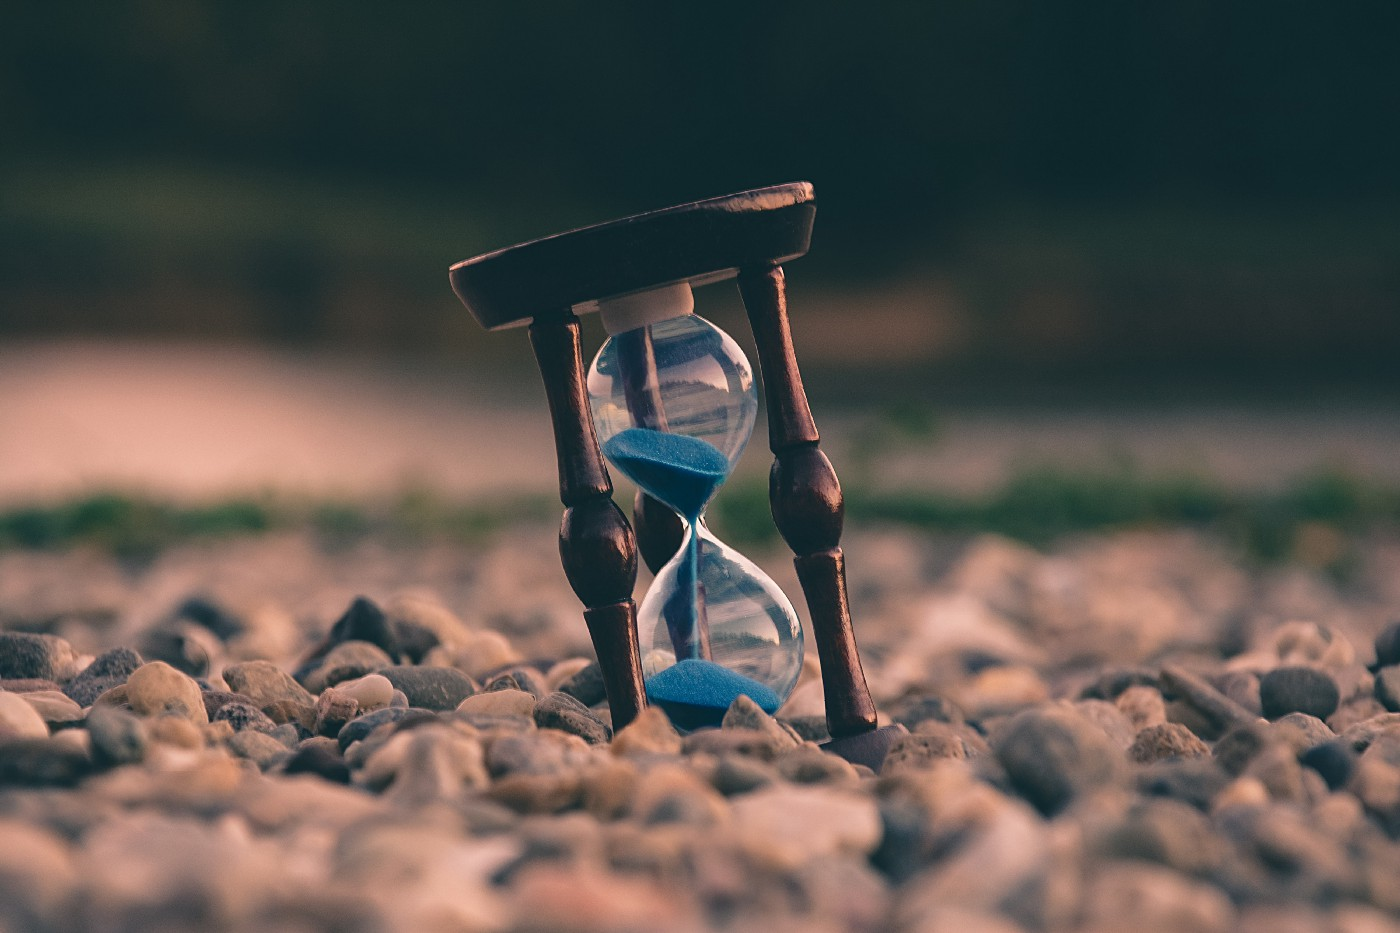 Hourglass with blue sand. Photo by Aron Visuals on Unsplash